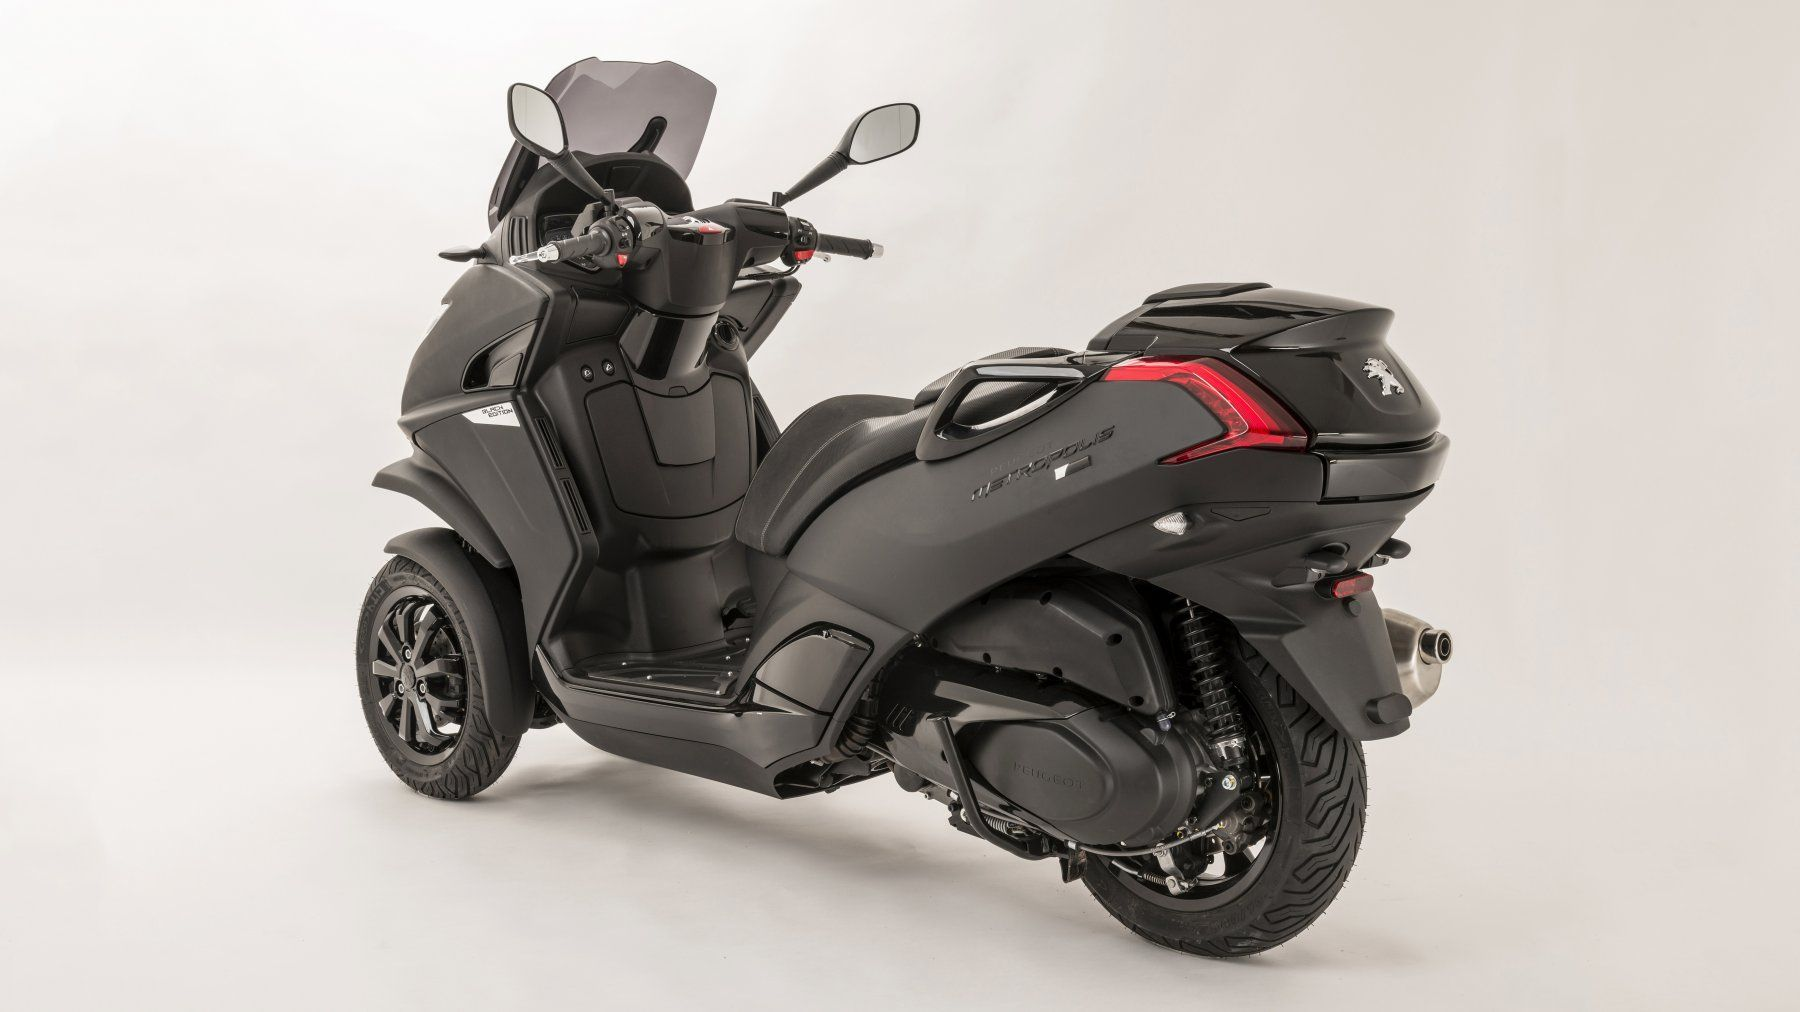 scooter nouveaut 2016 peugeot metropolis black edition moto scooter motos d 39 occasion. Black Bedroom Furniture Sets. Home Design Ideas